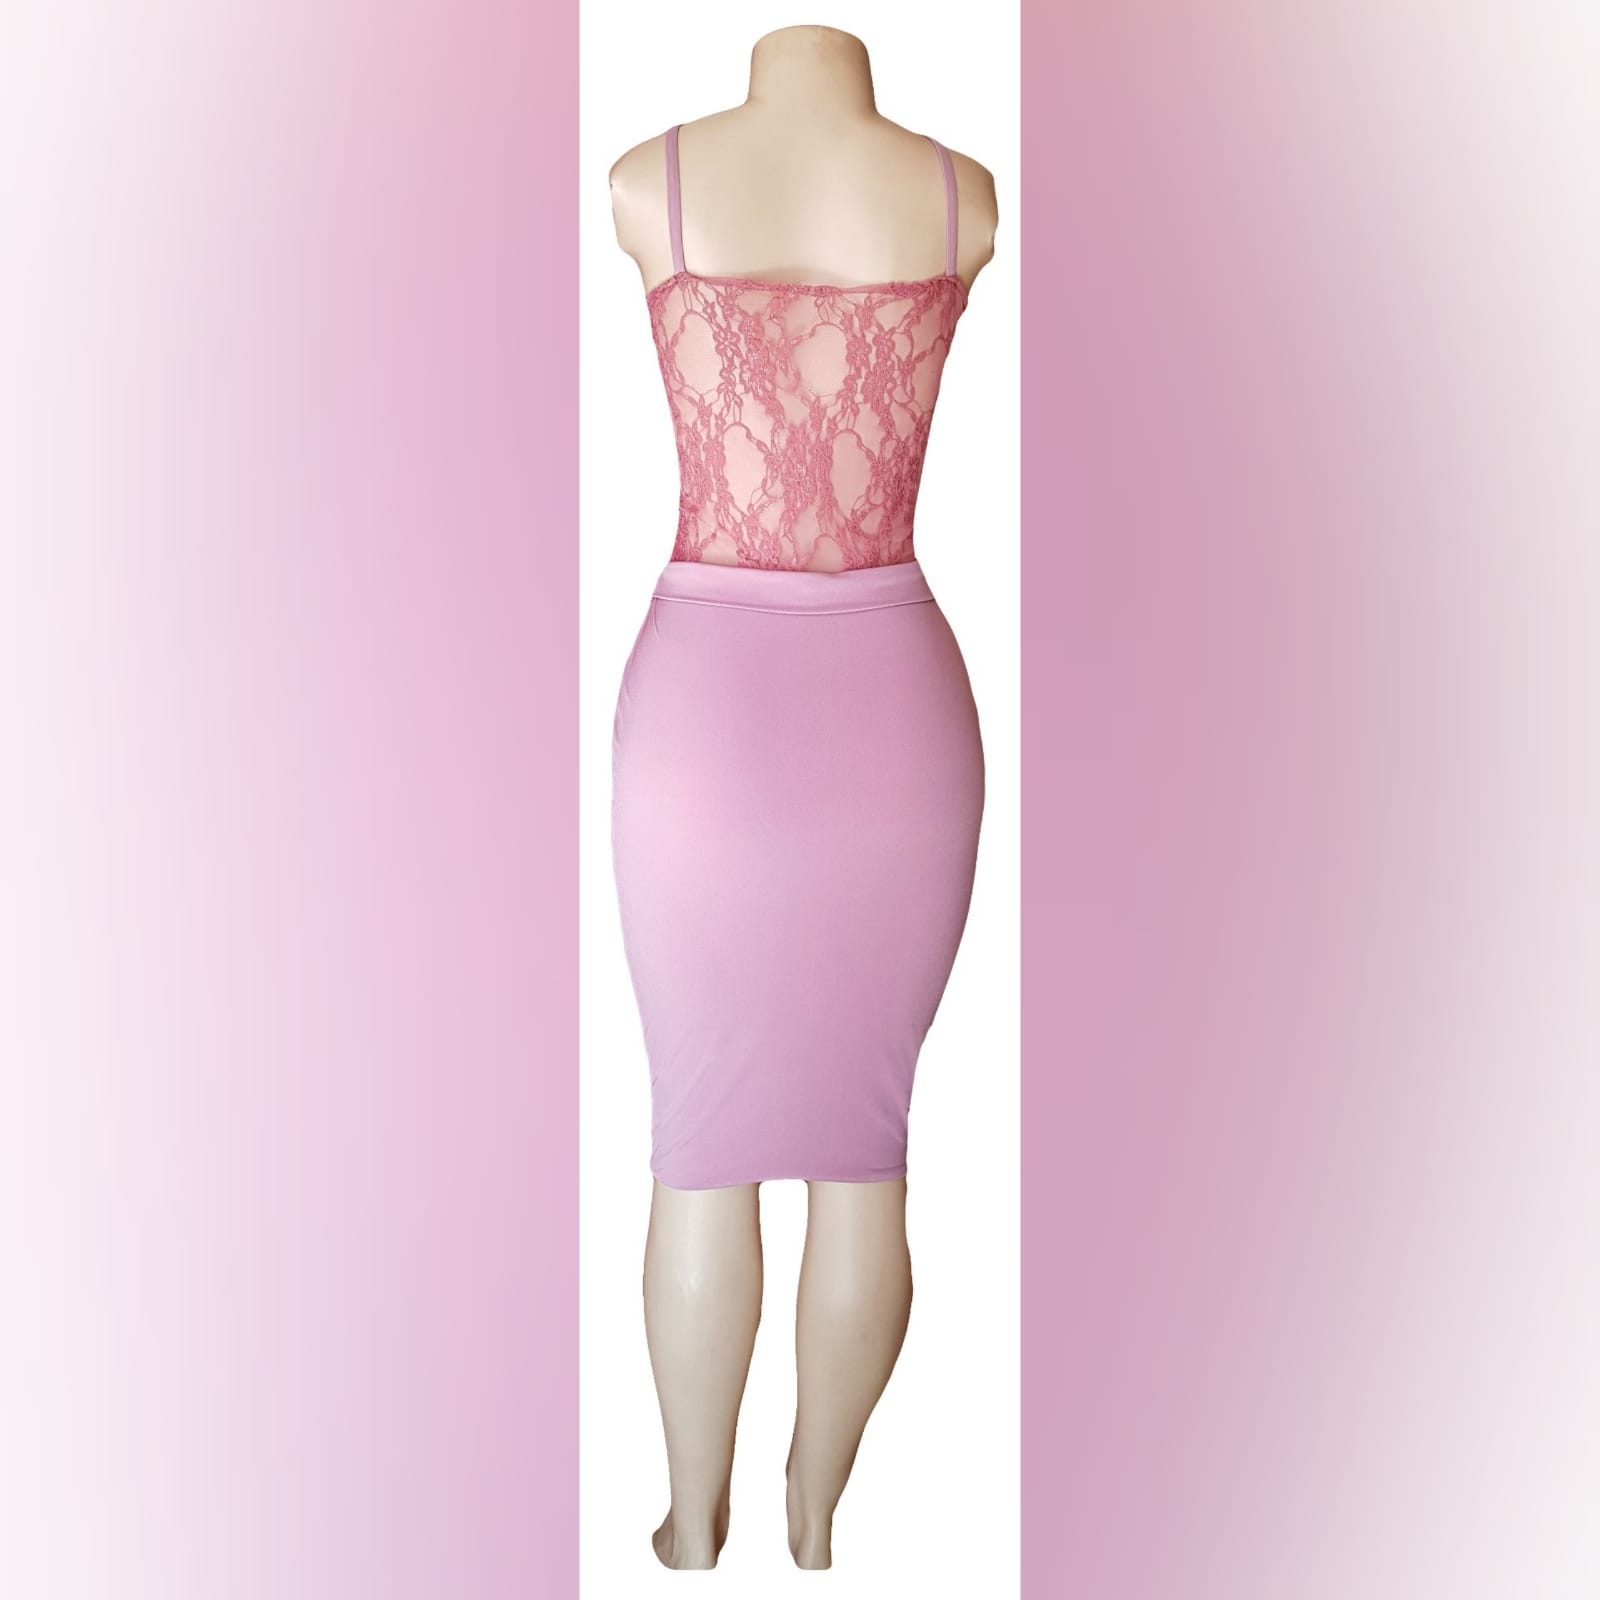 Knee length pink fitted smart casual dress 3 knee length pink fitted smart casual dress with a sheer lace bodice with a waistband and shoulder straps.